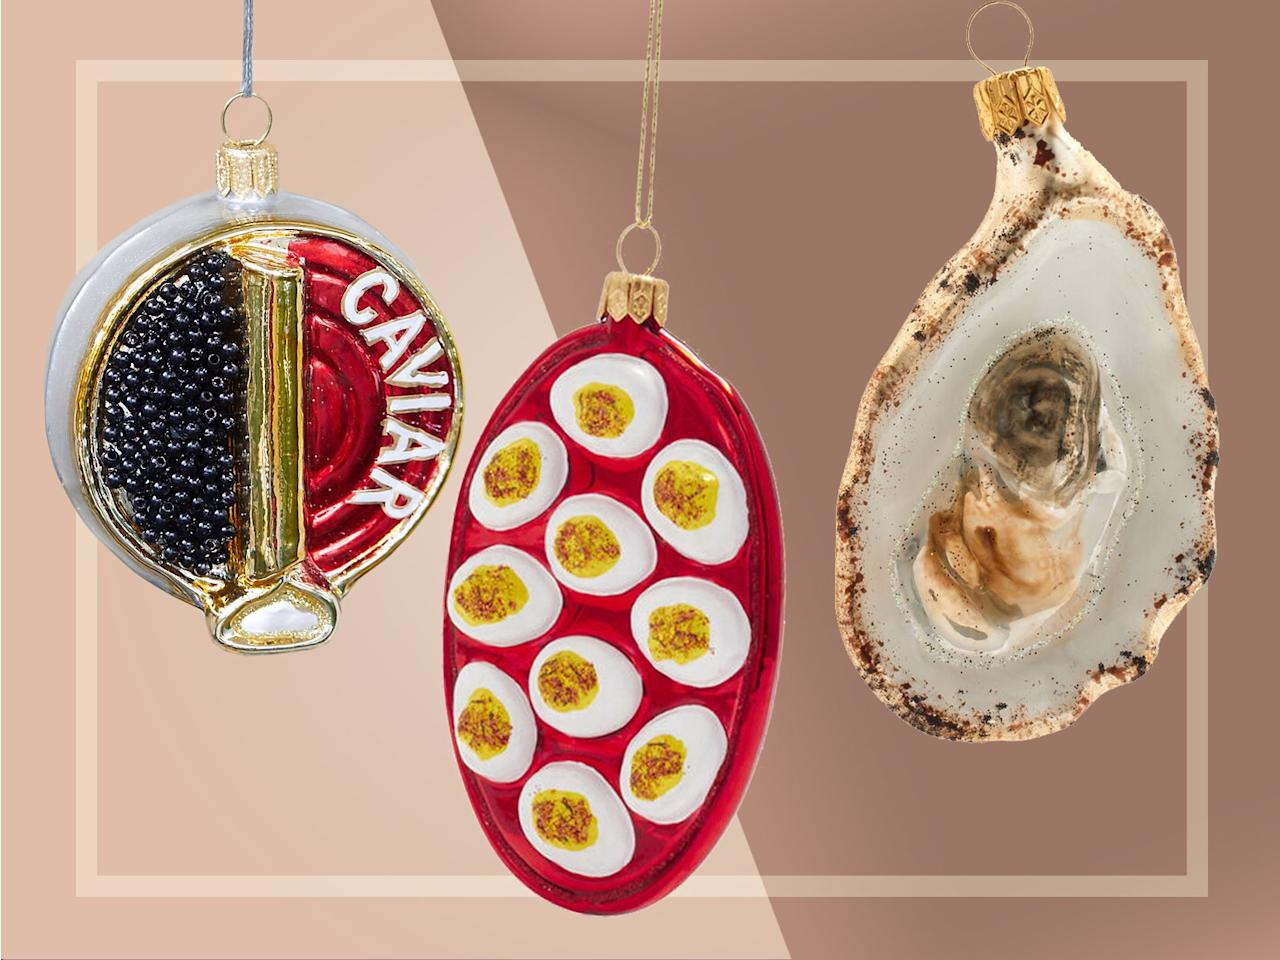 """<p>For the caviar enthusiast, Terrain has an ornament made to look like a tin filled to the brim with little black """"pearls."""" Other appetizer-adjacent designs include a platter of deviled eggs and an oyster from Sur La Table.</p>  <p>Caviar Tin Glass Ornament, $24 at <a href=""""http://www.anrdoezrs.net/links/7923151/type/dlg/sid/FW%2Cfood-ornaments-caviar-oyster-appetizers-ft-blog1119.jpg%2Cscrowder805%2C%2CIMA%2C1387702%2C201911%2CI/http://www.shopterrain.com/products/caviar-tin-glass-ornament"""" target=""""_blank"""">shopterrain.com</a></p> <p>Deviled Egg Glass Ornament, $22 at <a href=""""http://surlatable.aiy7.net/c/249354/635796/10190?subId1=FW%2Cfood-ornaments-caviar-oyster-appetizers-ft-blog1119.jpg%2Cscrowder805%2C%2CIMA%2C1387702%2C201911%2CI&u=http%3A%2F%2Fwww.surlatable.com%2Fdeviled-eggs-glass-ornament%2FPRO-3500451.html"""" target=""""_blank"""">surlatable.com</a></p> <p>Half Shell Oyster Glass Ornament, $13 at <a href=""""http://surlatable.aiy7.net/c/249354/635796/10190?subId1=FW%2Cfood-ornaments-caviar-oyster-appetizers-ft-blog1119.jpg%2Cscrowder805%2C%2CIMA%2C1387702%2C201911%2CI&u=http%3A%2F%2Fwww.surlatable.com%2Foyster-glass-ornament%2FPRO-3499878.html"""" target=""""_blank"""">surlatable.com</a></p>"""